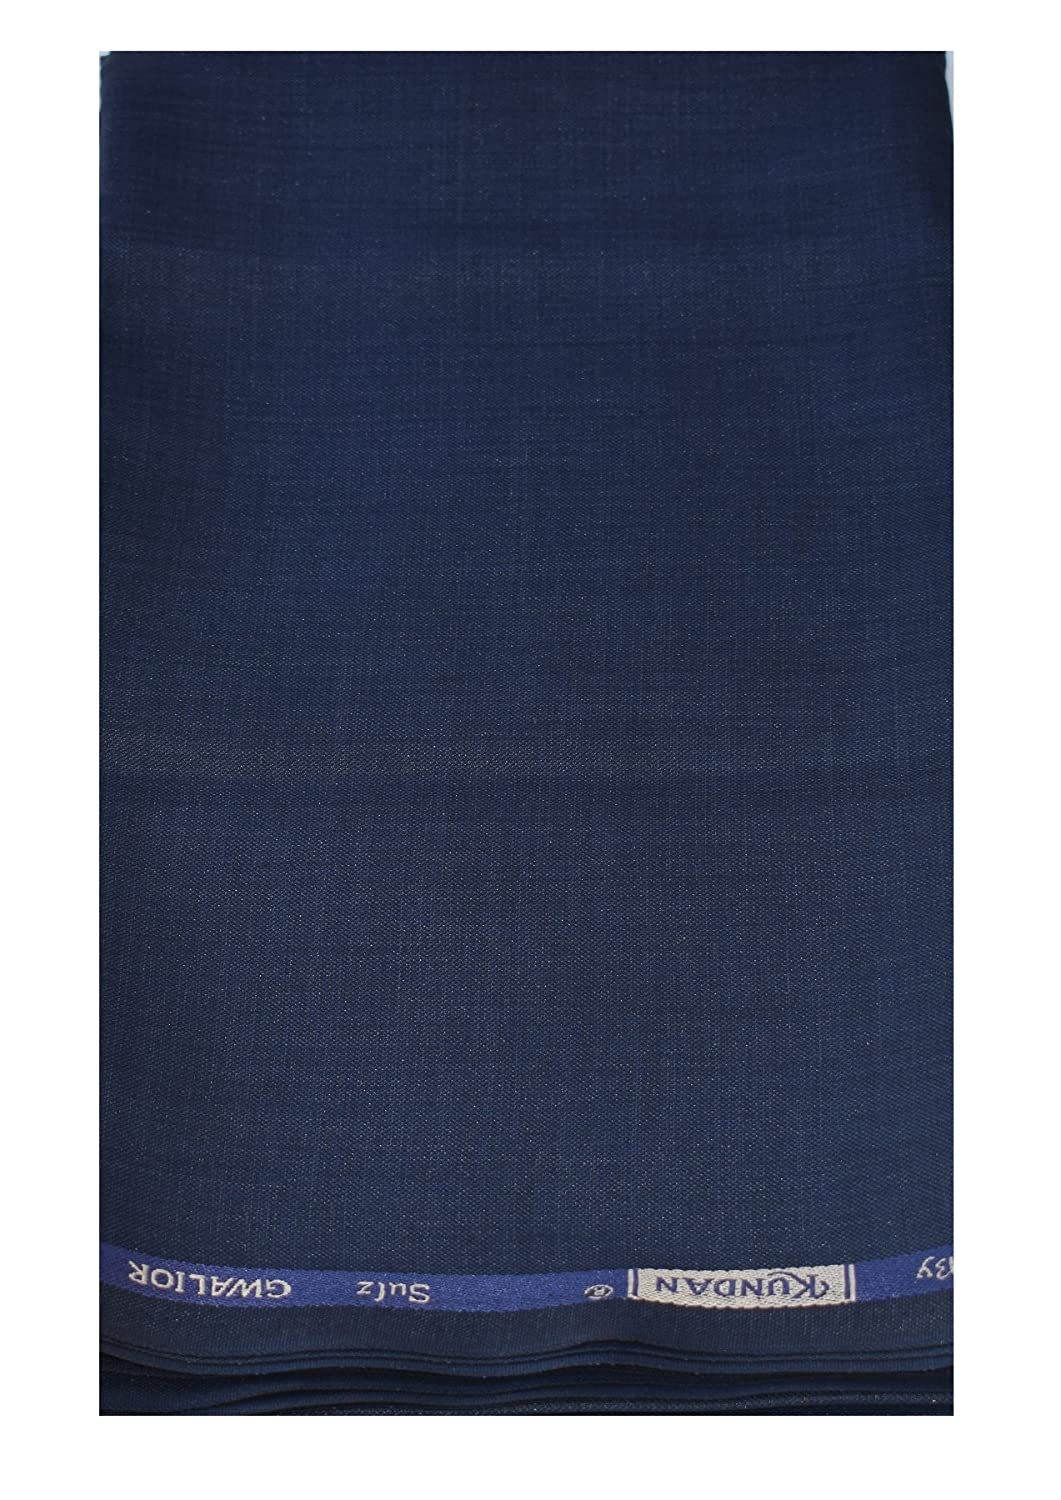 KUNDAN SULZ GWALIOR Men's 1.20 m Unstitched Trouser Fabric (Navy Blue, Free Size)